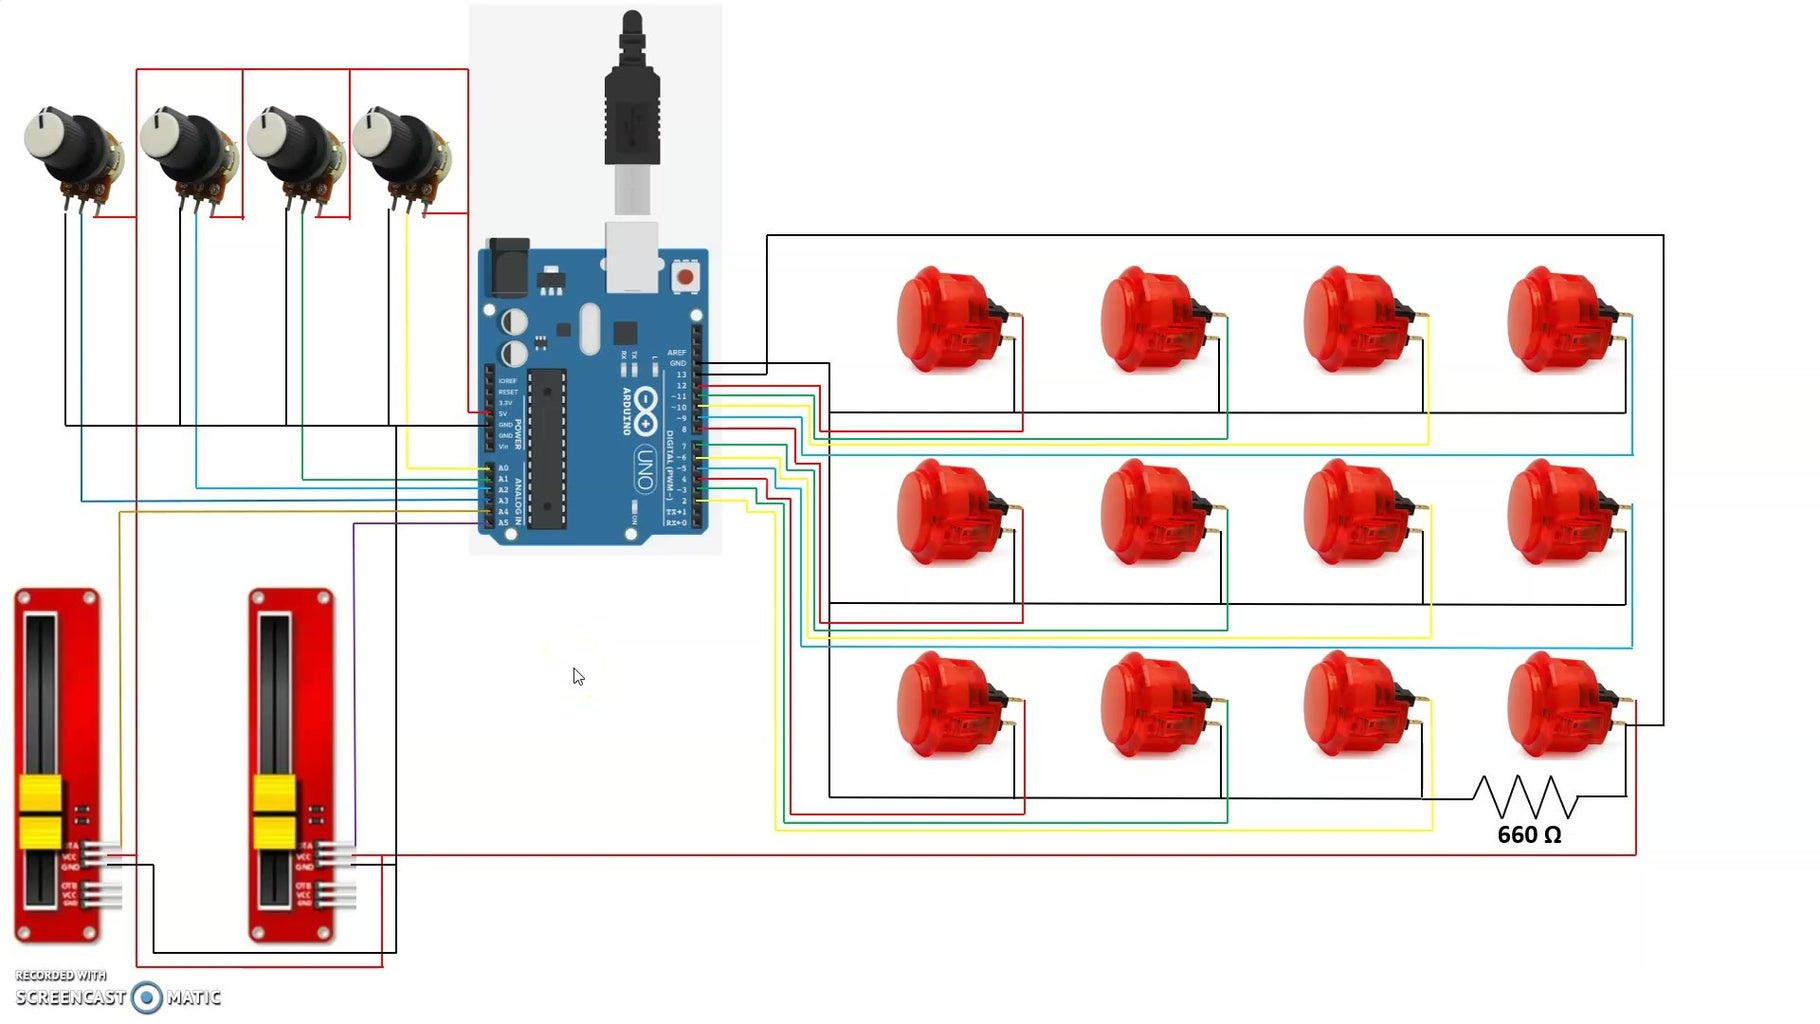 Circuit Diagram and Connections